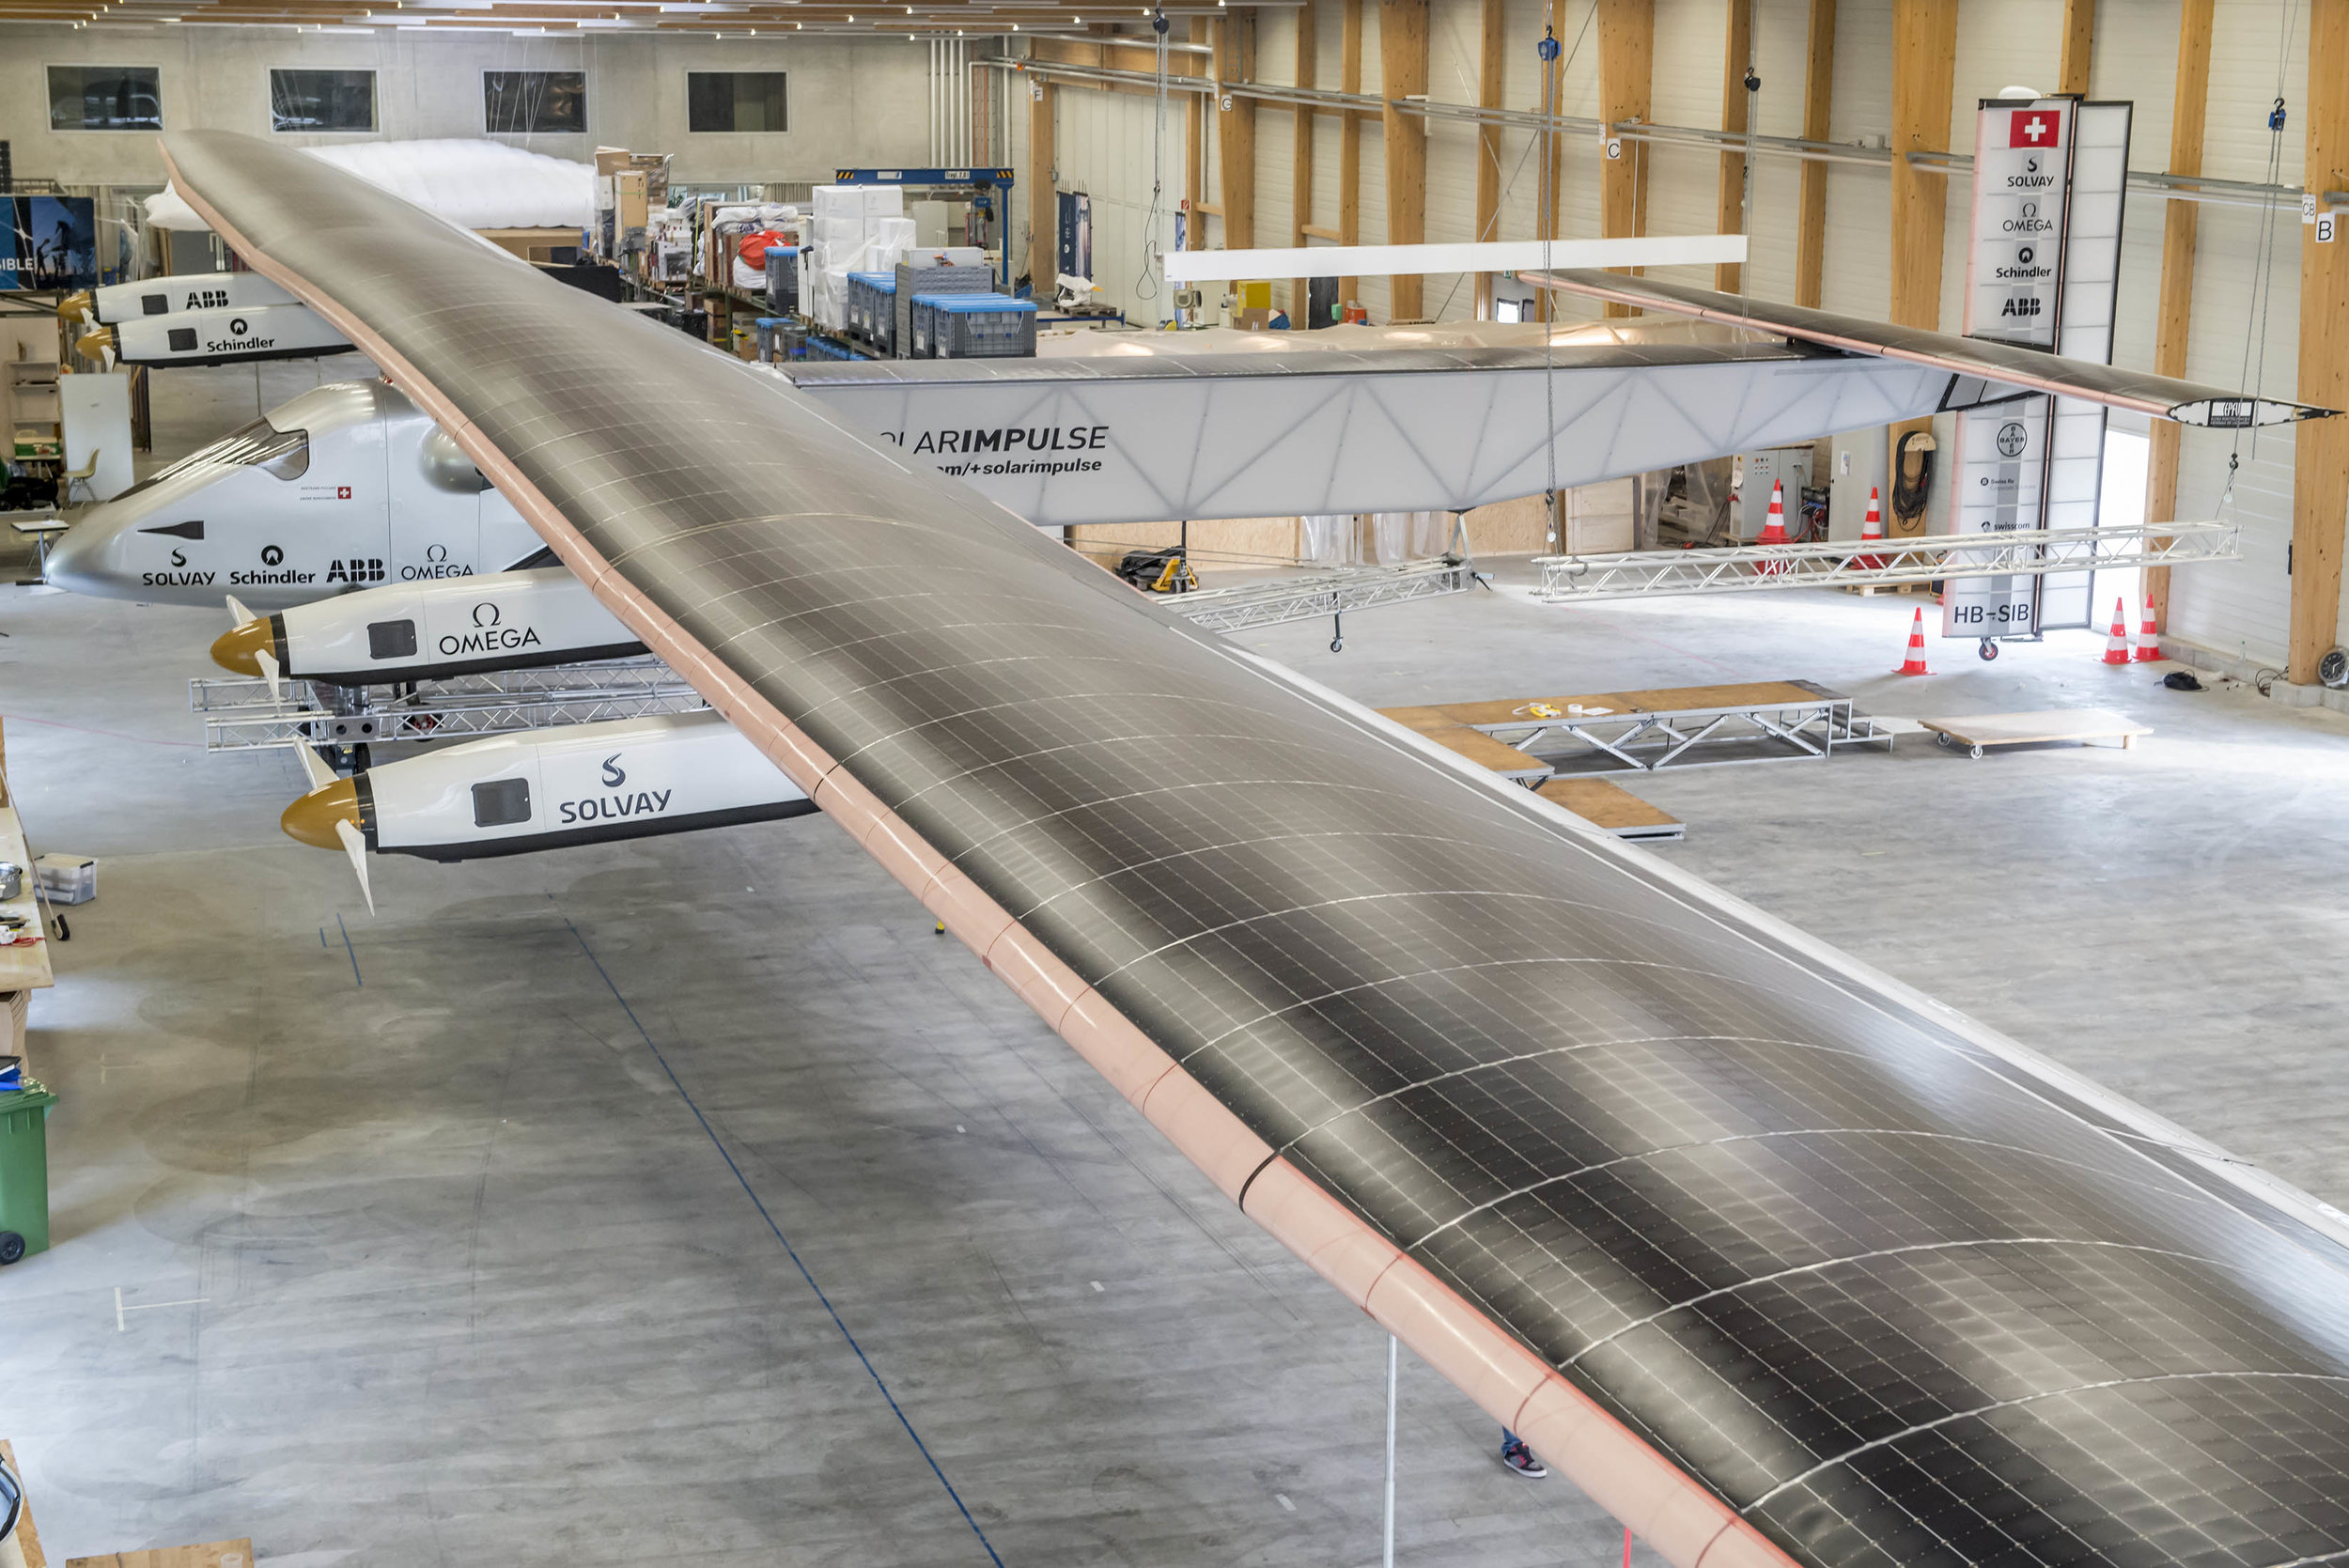 SOLAR IMPULSE 1 & 2: TRUSS STRUCTURE TUBES